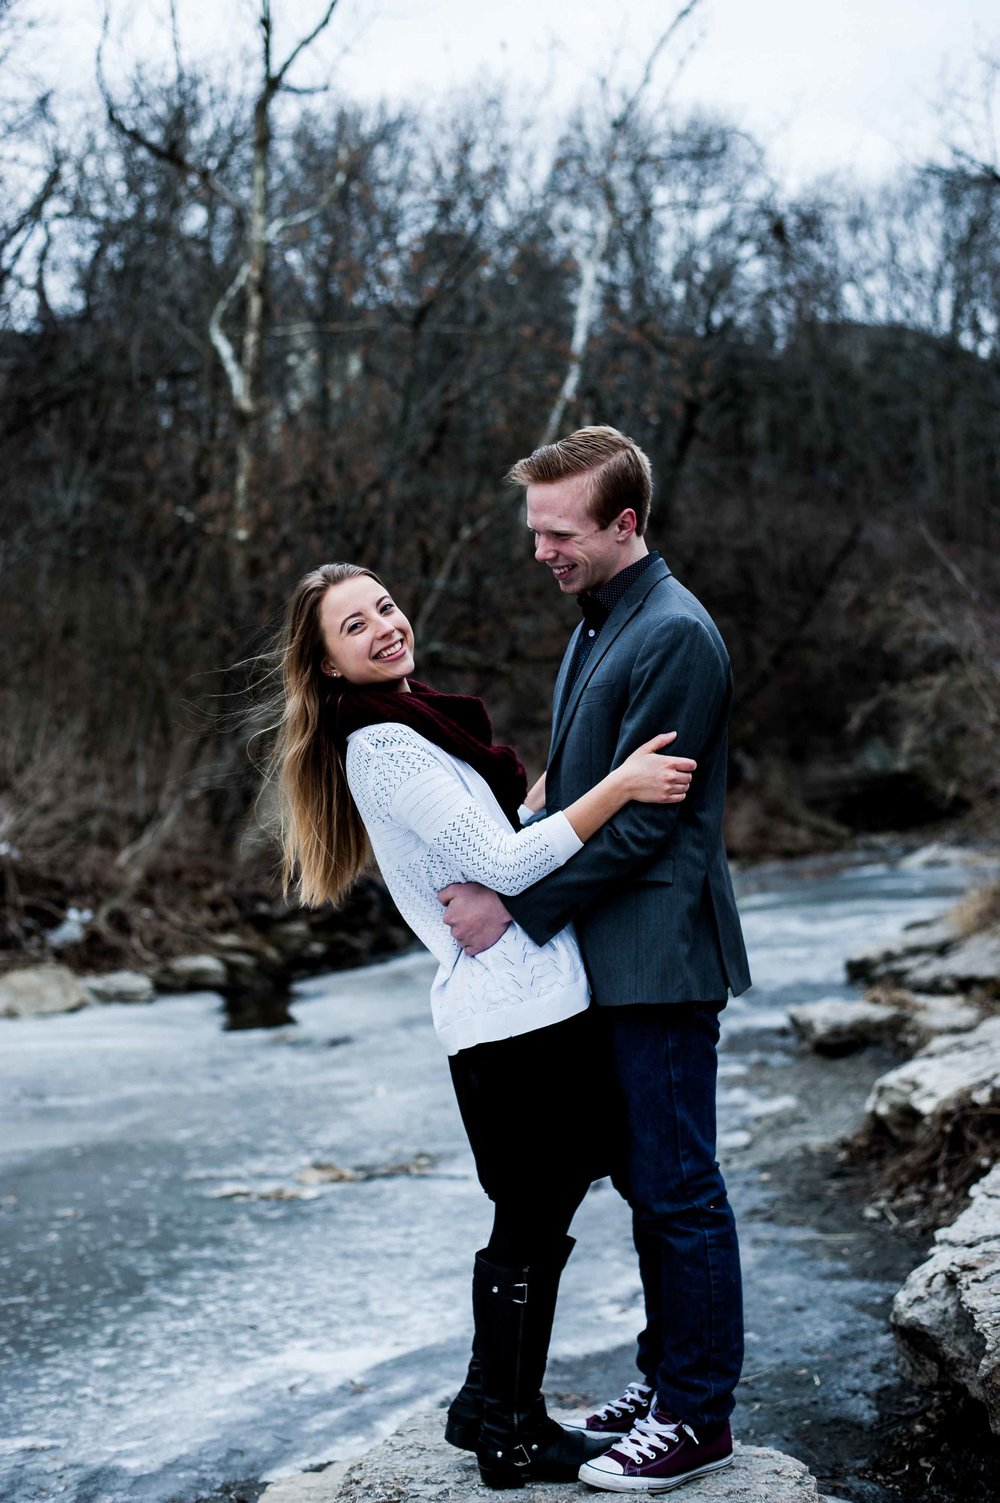 Jonathan and Joanna Engagement 2018-Jonathan and Joanna Engagement 201-0035.jpg